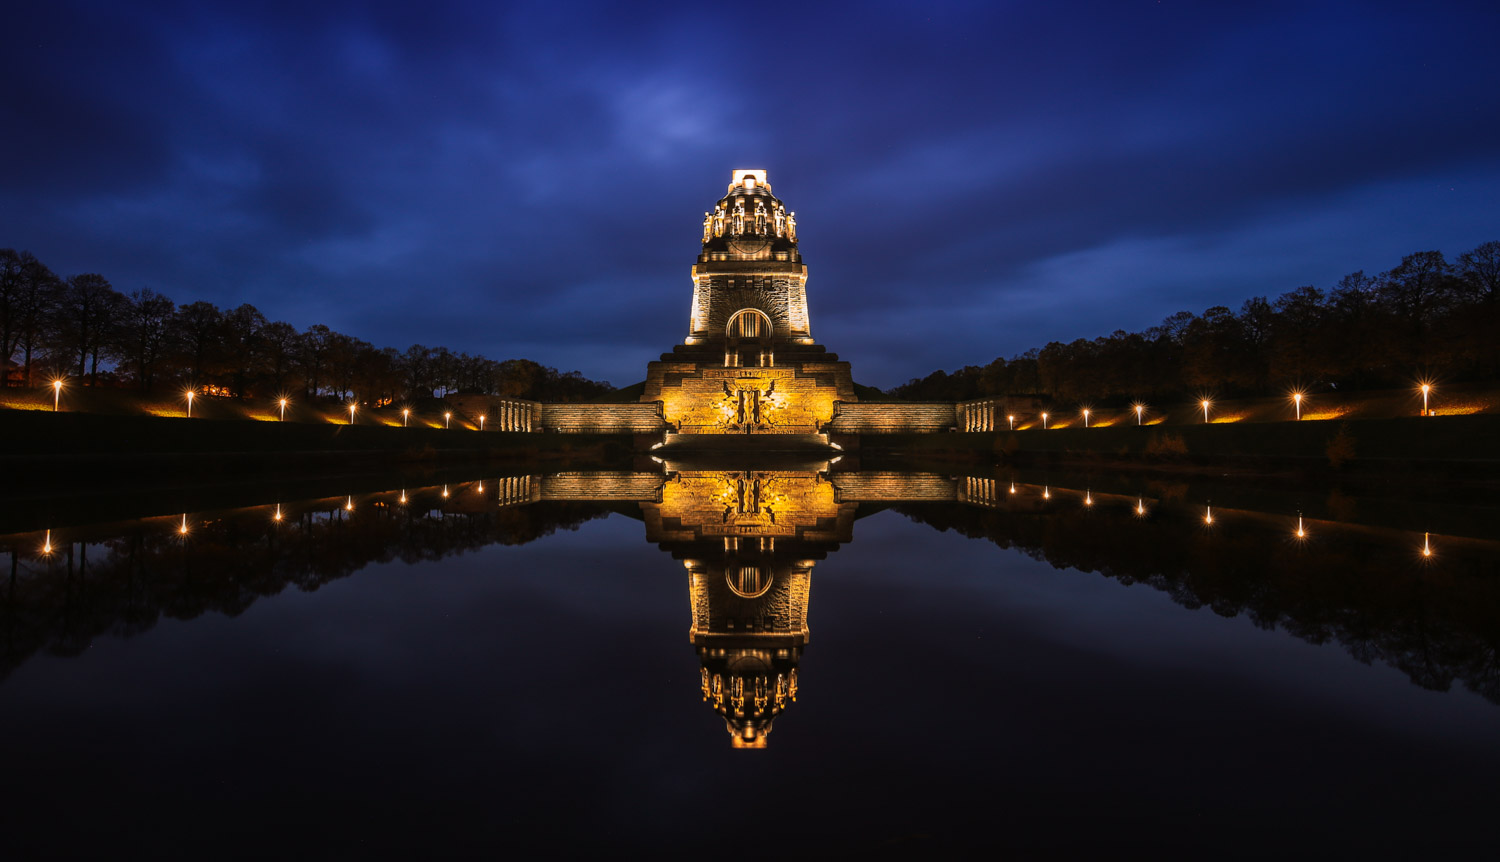 Monument to the Battle of the Nations - Leipzig, Germany - Architecture Photography